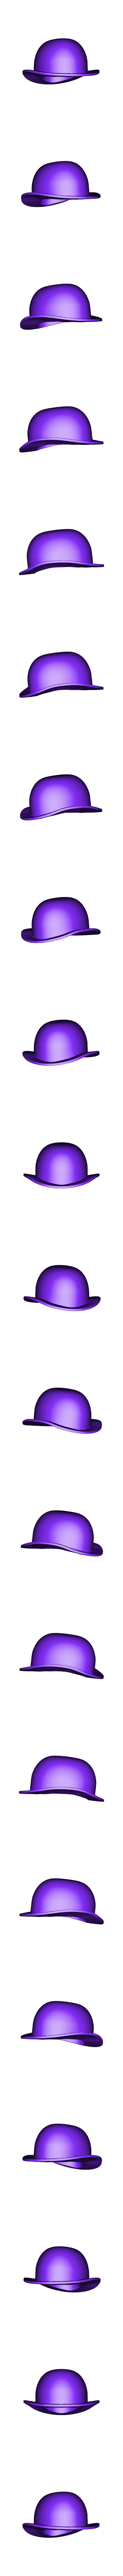 cleese_hat.obj Download free OBJ file John Cleese • Model to 3D print, Toshi_TNE